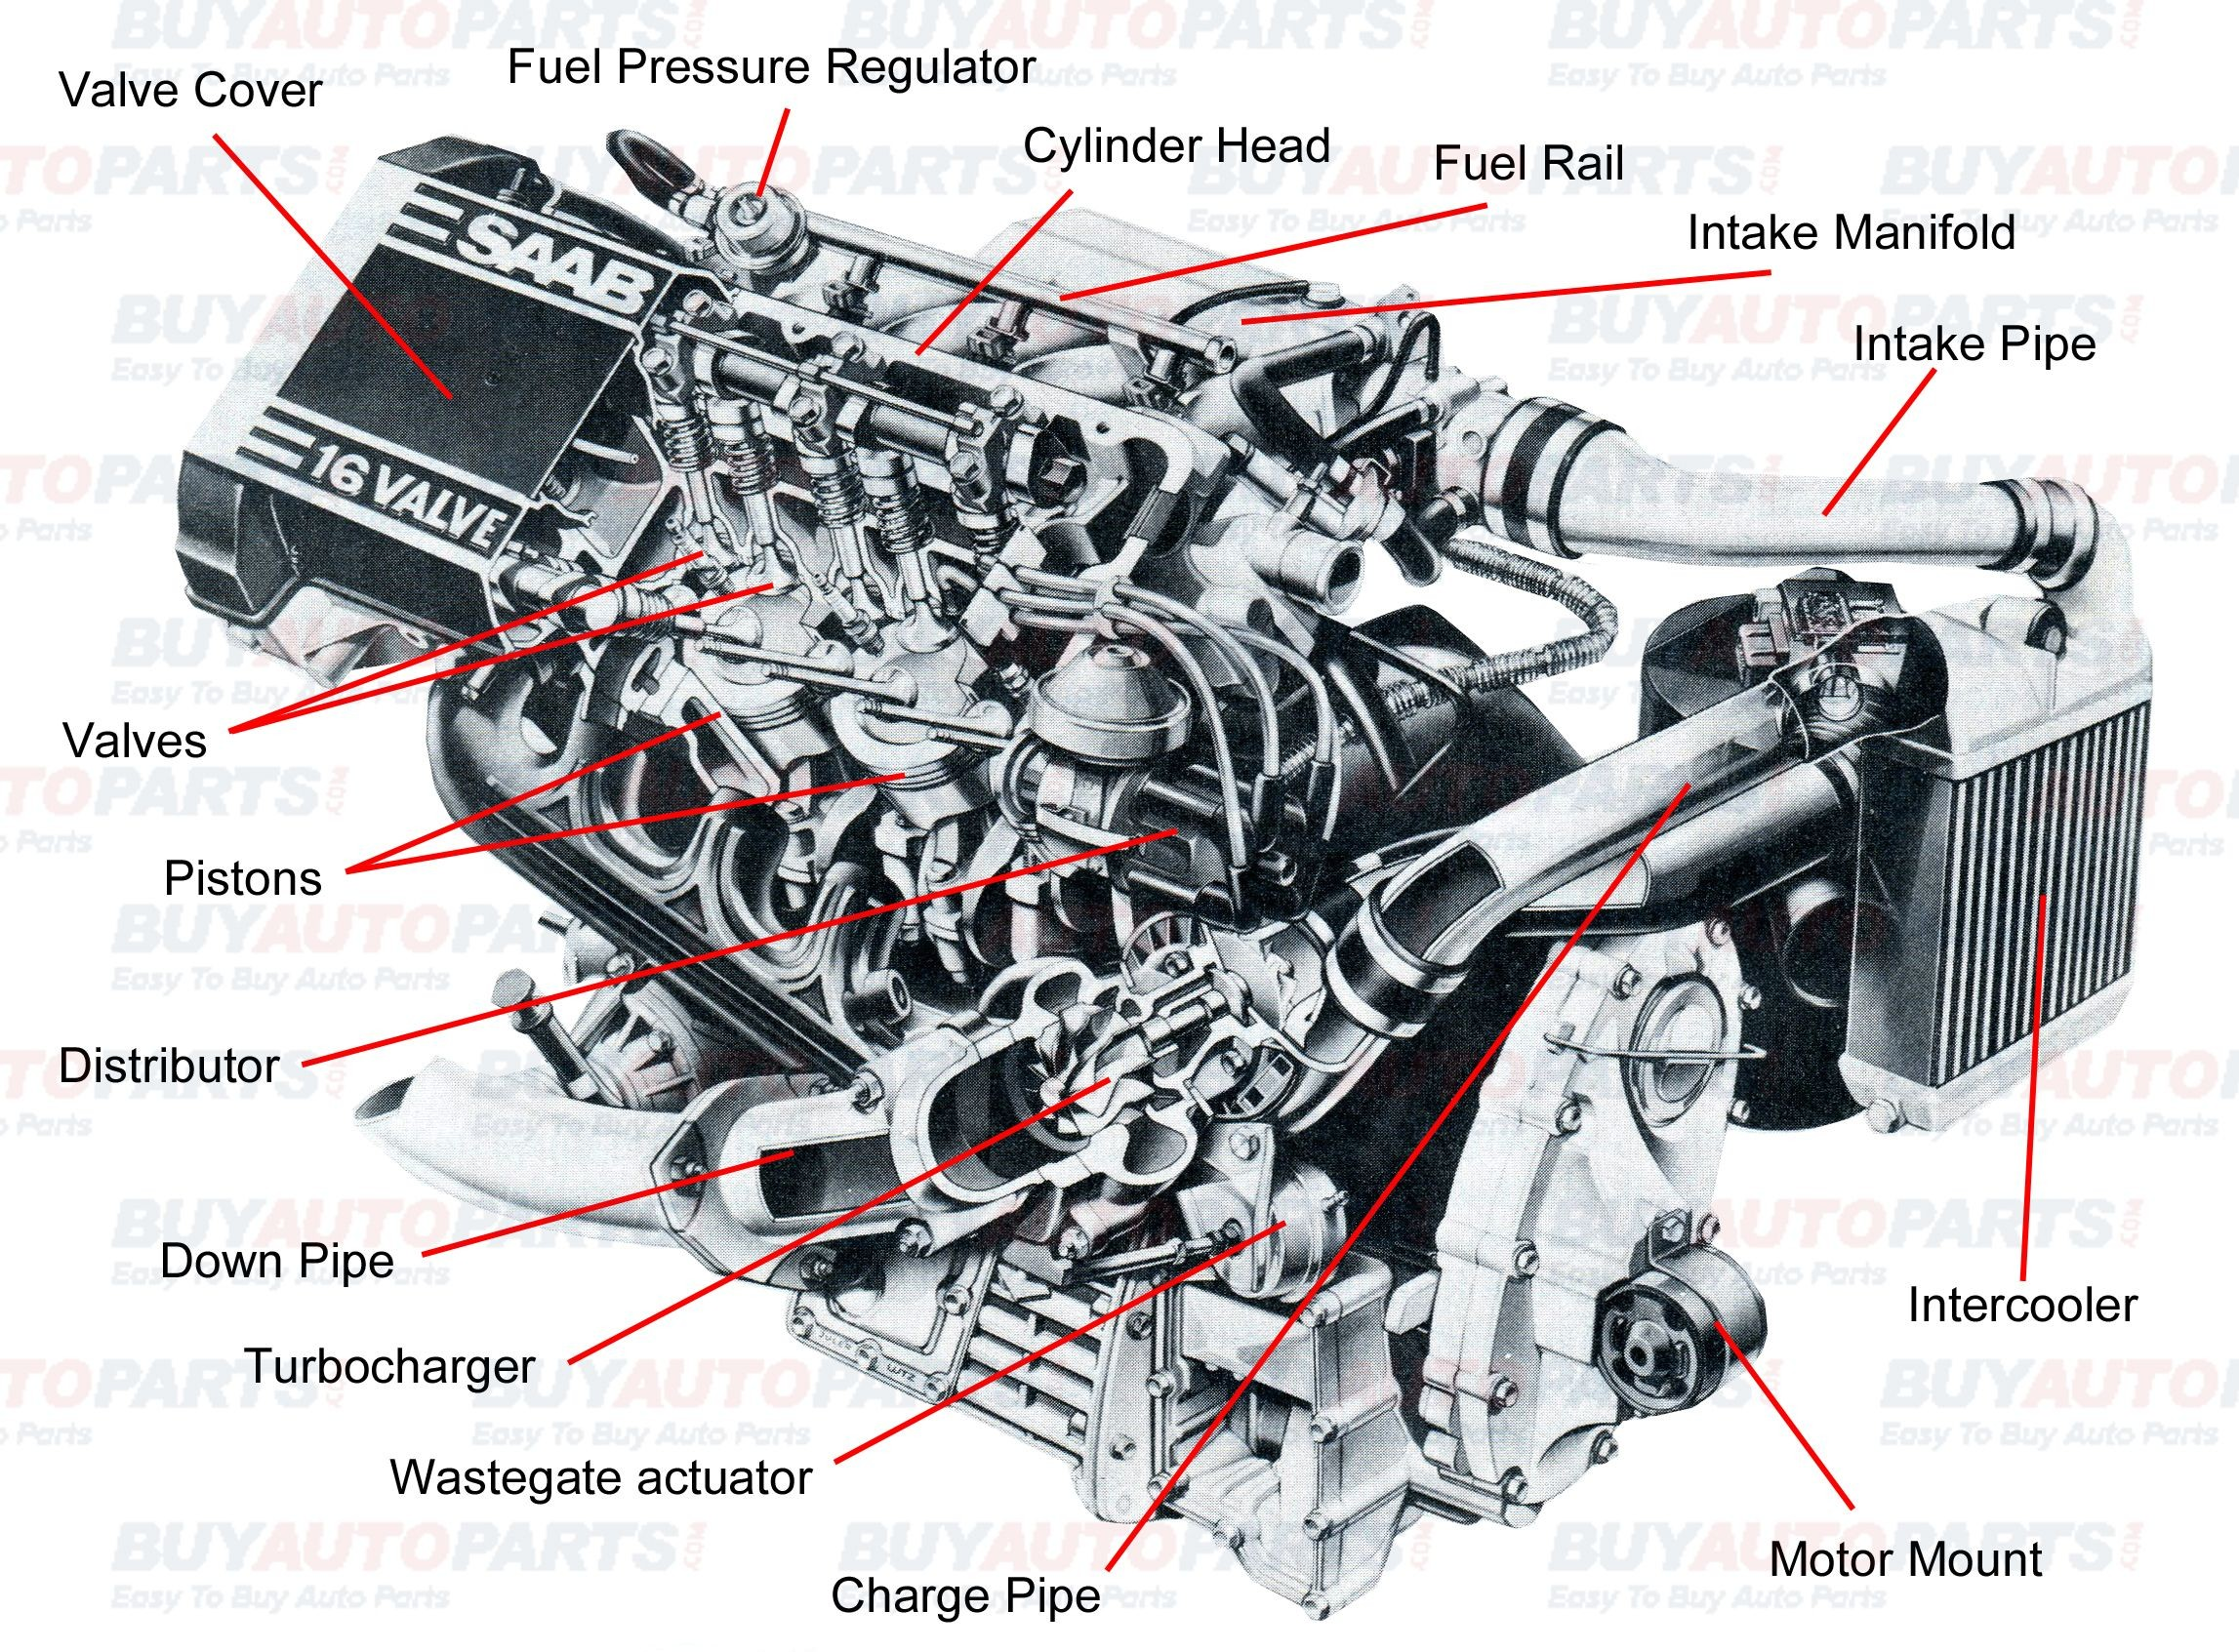 Car Parts Diagram Chart Pin by Jimmiejanet Testellamwfz On What Does An Engine with